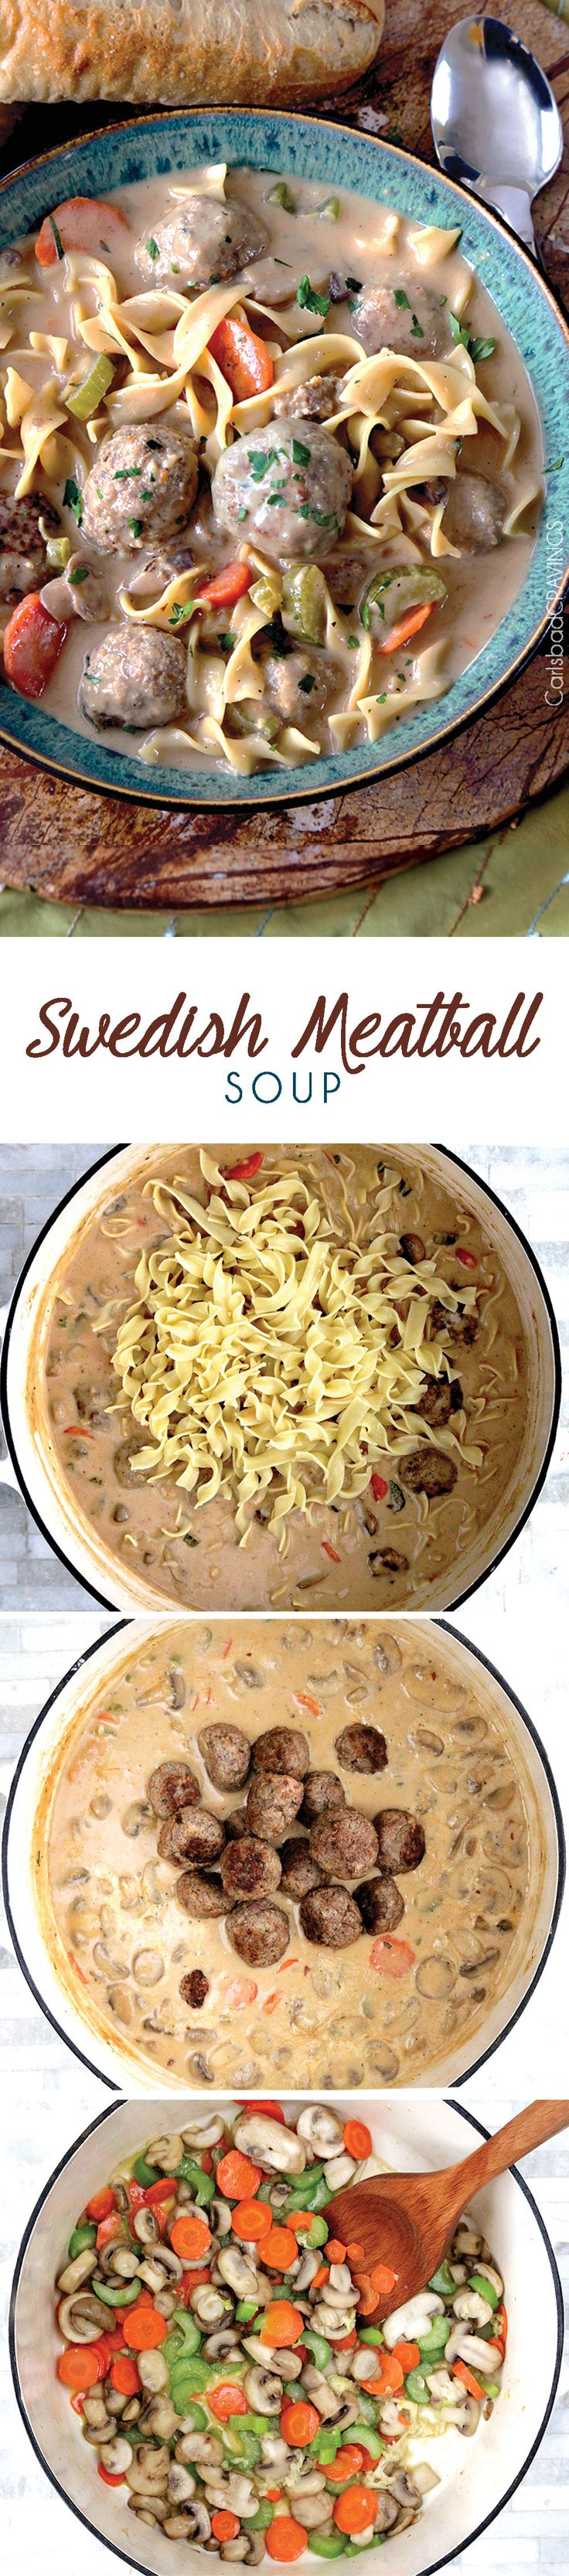 Swedish Meatball Soup - my favorite way to eat Swedish meatballs and this meal goes from meatballs to soup in a flash! Tender, moist meatballs, hearty noodles, carrots, mushrooms and celery all swimming in luscious creamy brown gravy broth swirled with sour cream. #onlynoyolks #BH #ad #swedishmeatballs #giveaway